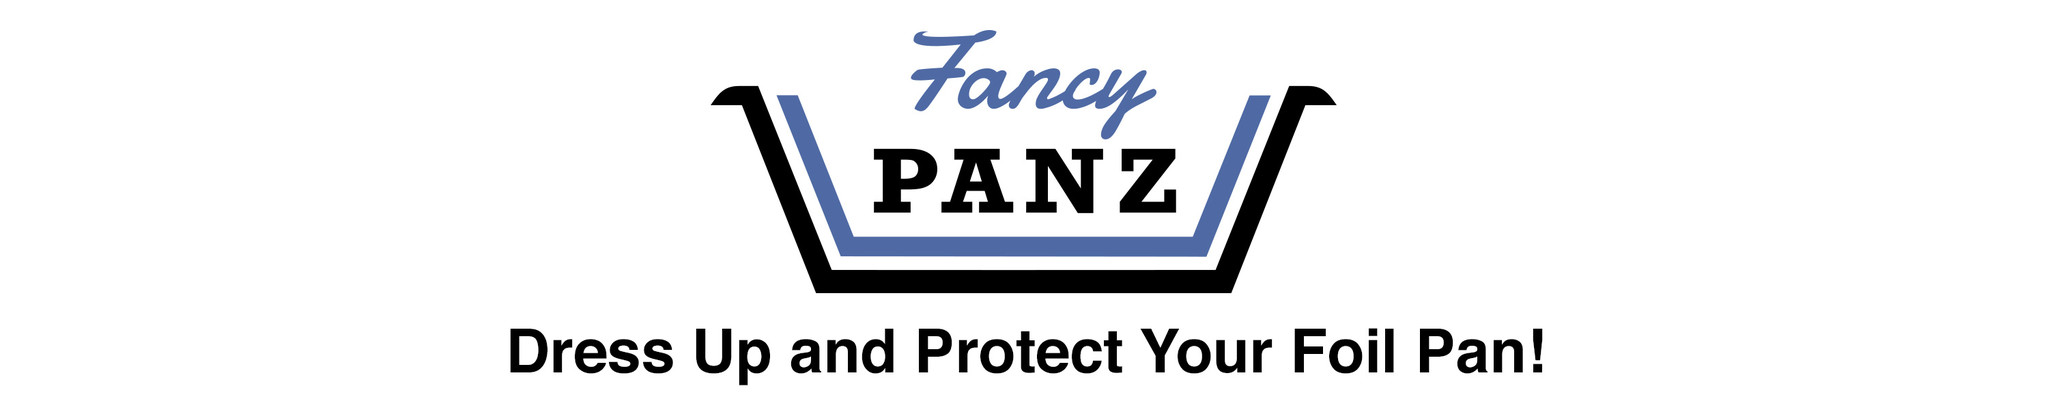 Fancy Panz